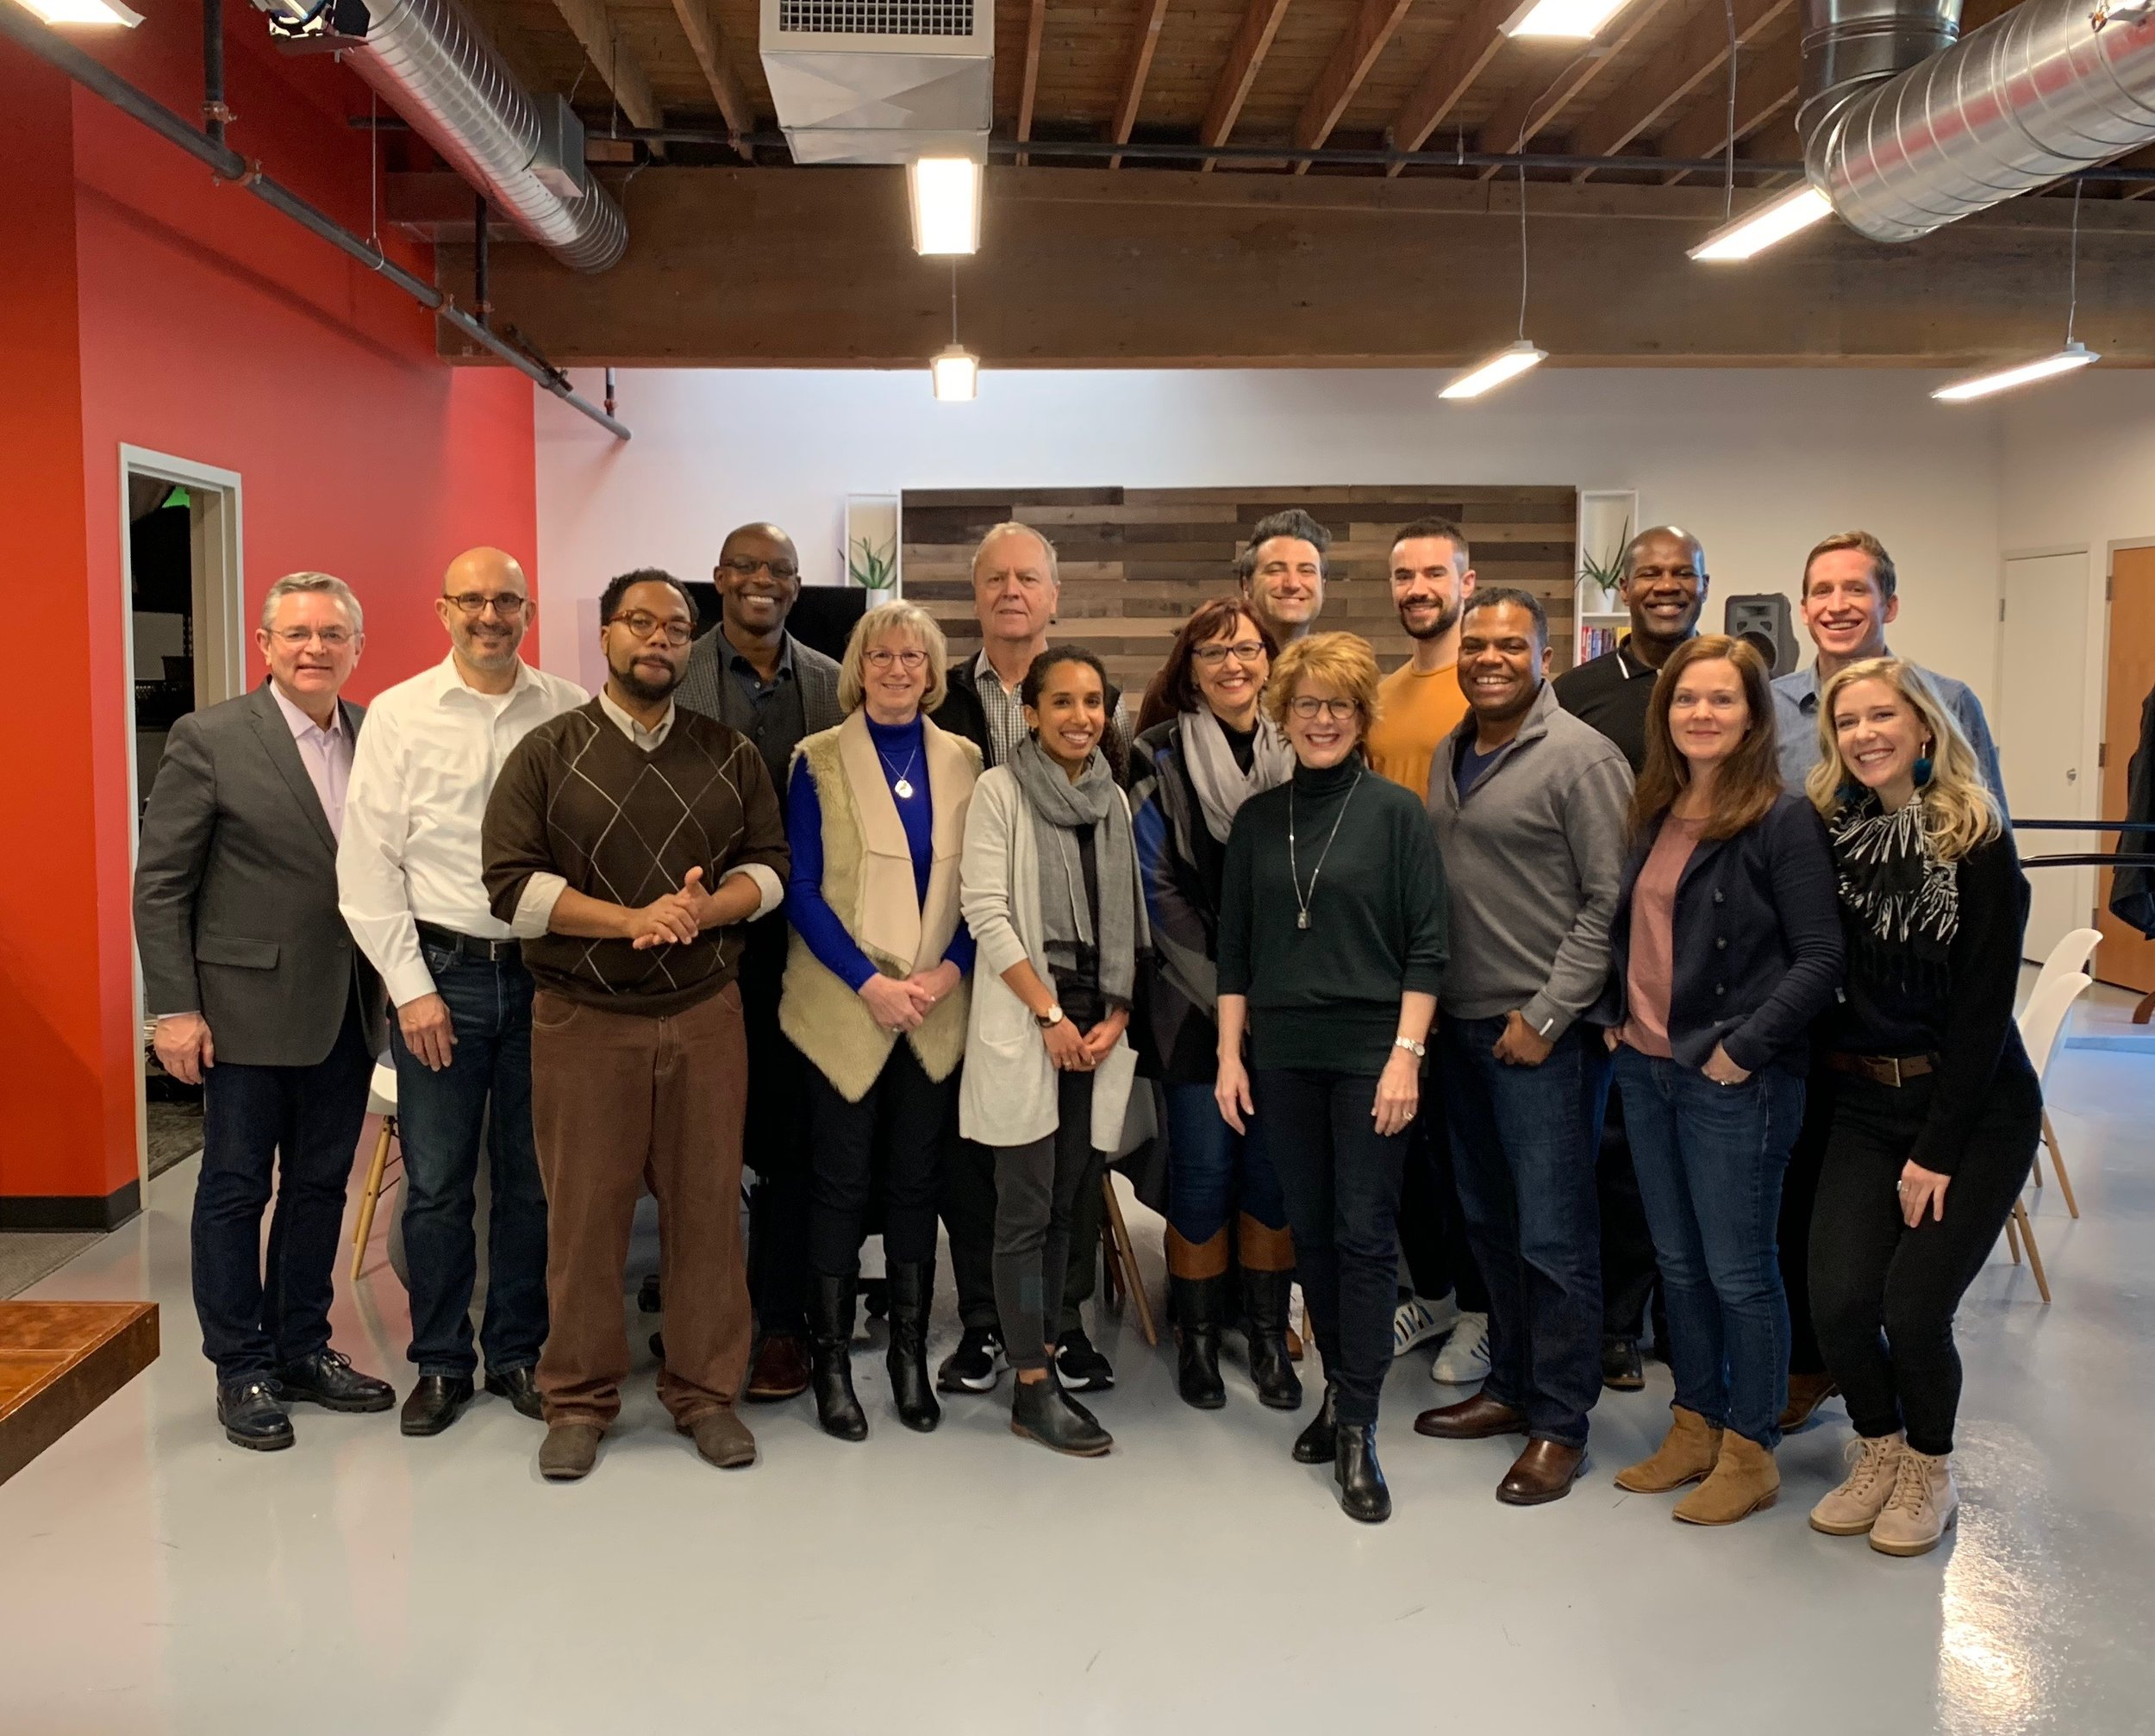 Group photo from the Align Retreat, January 2019.